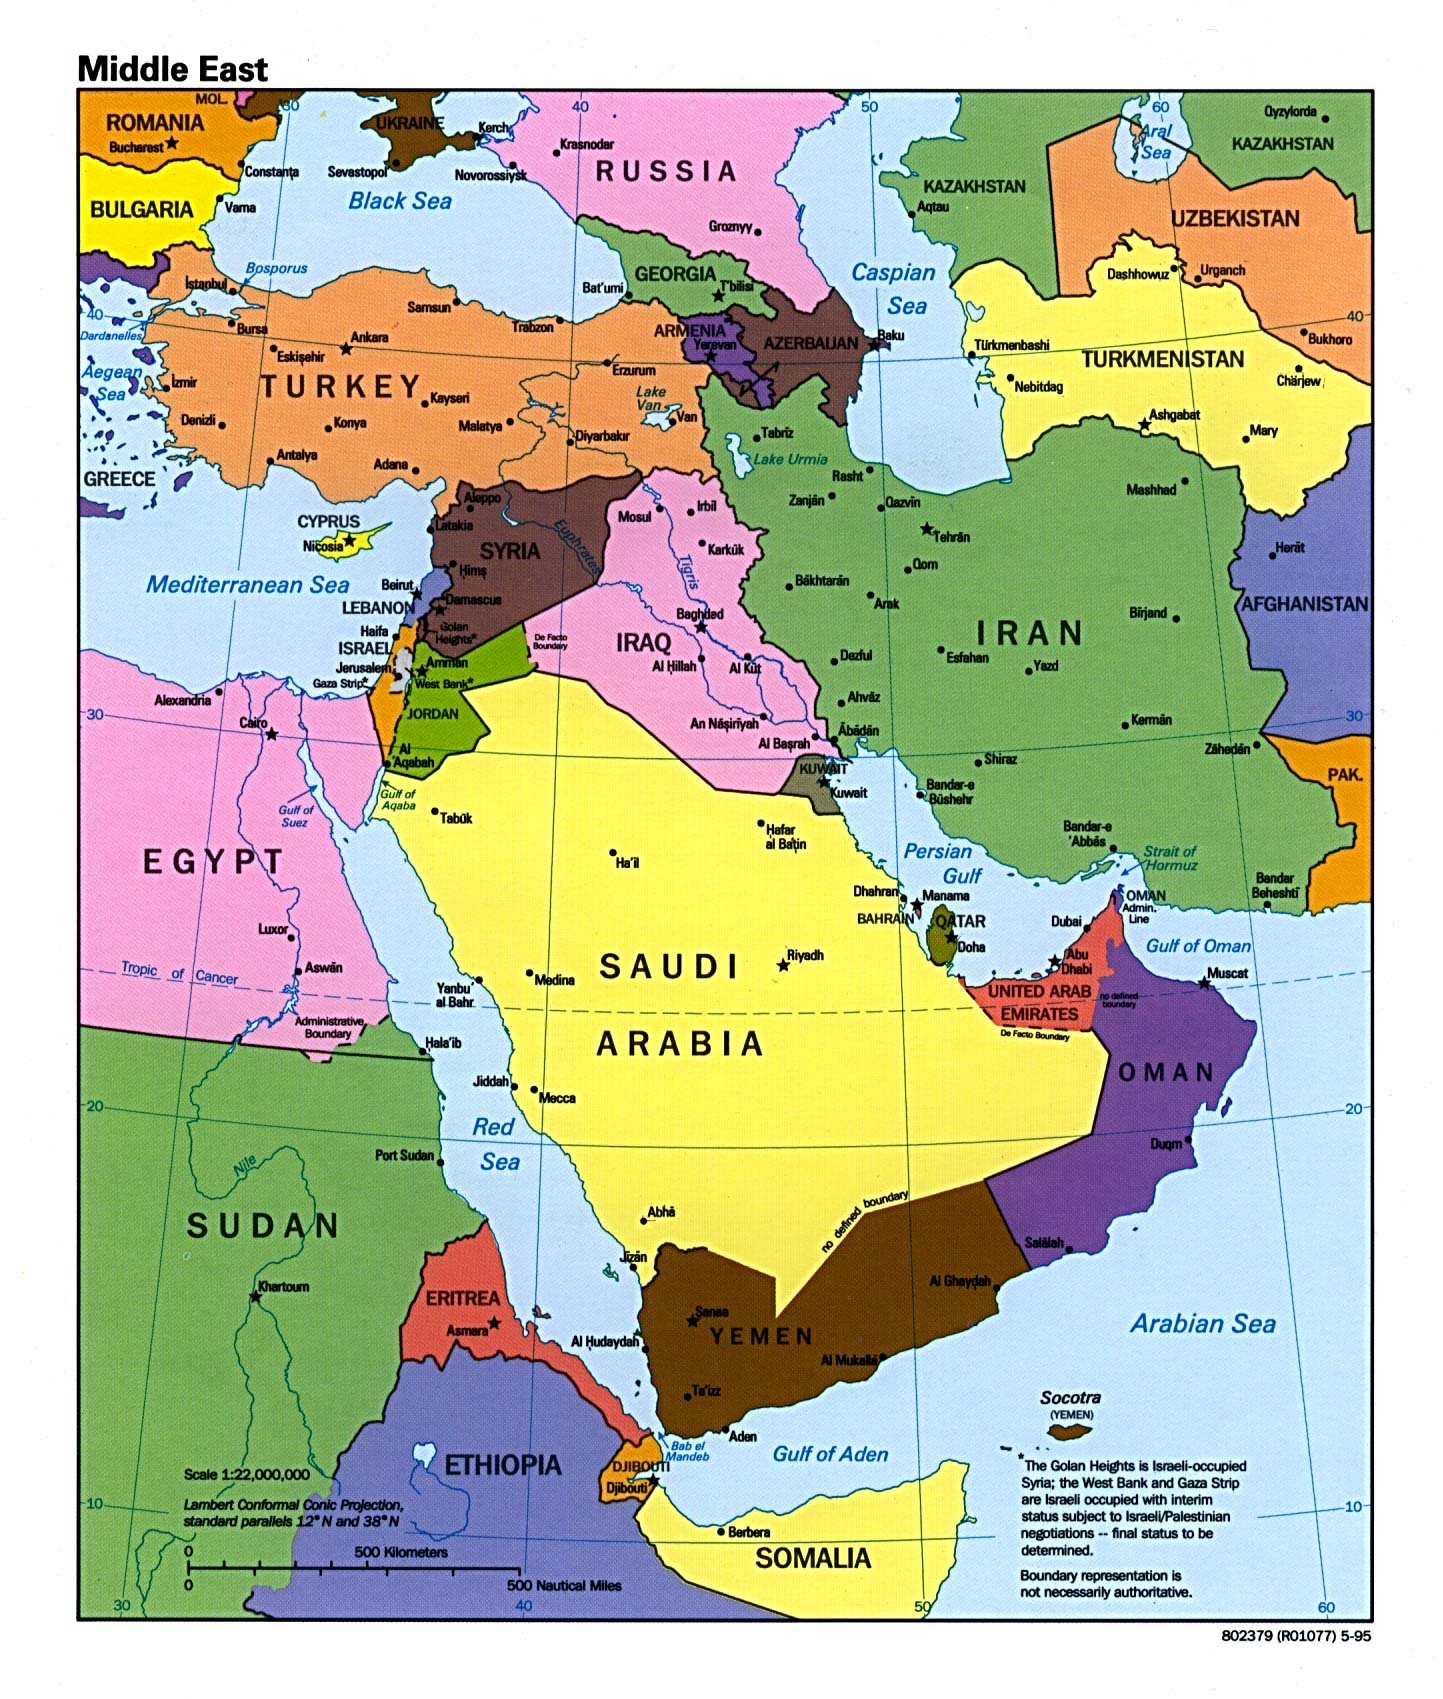 Middle East Map Folbot In the Fold